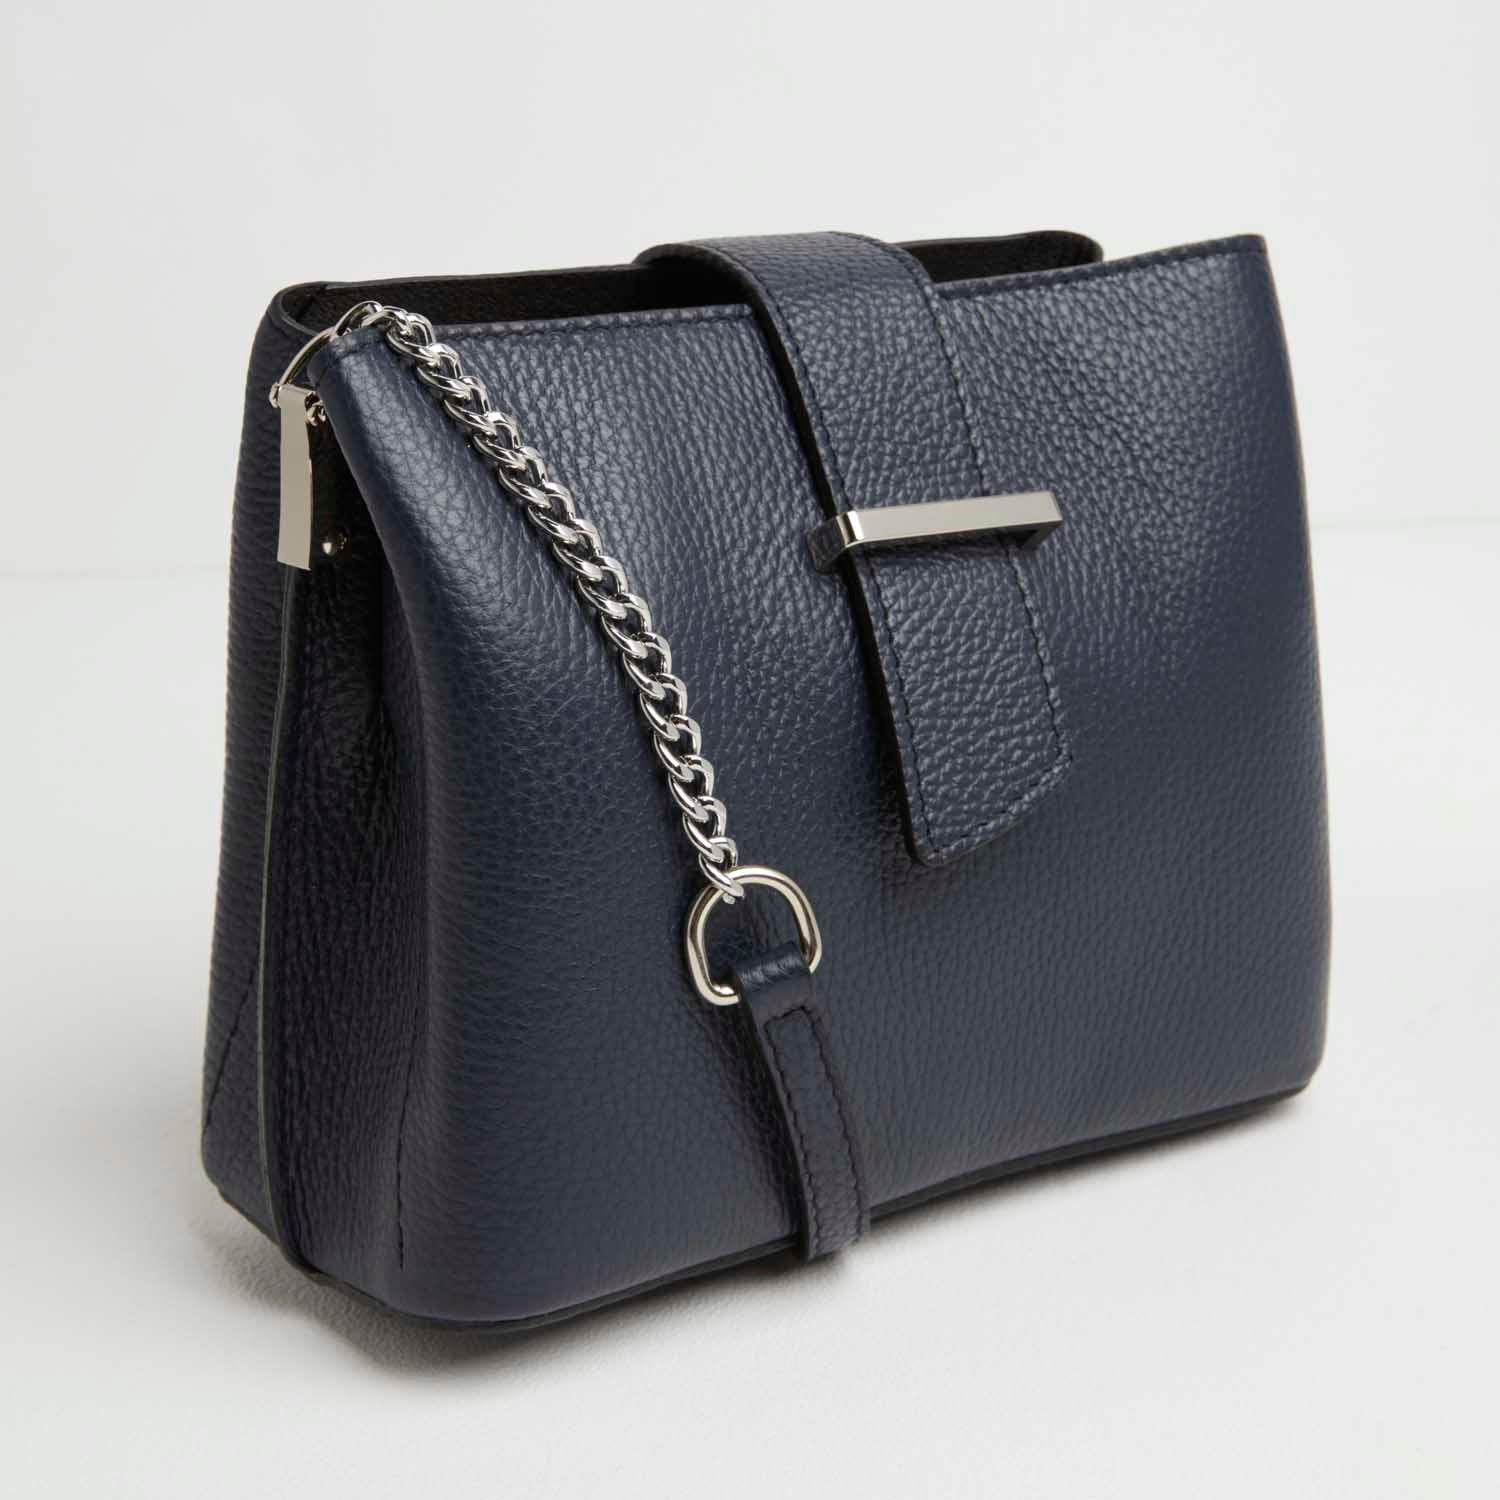 Alusia Crossbody Bag with Chain Strap